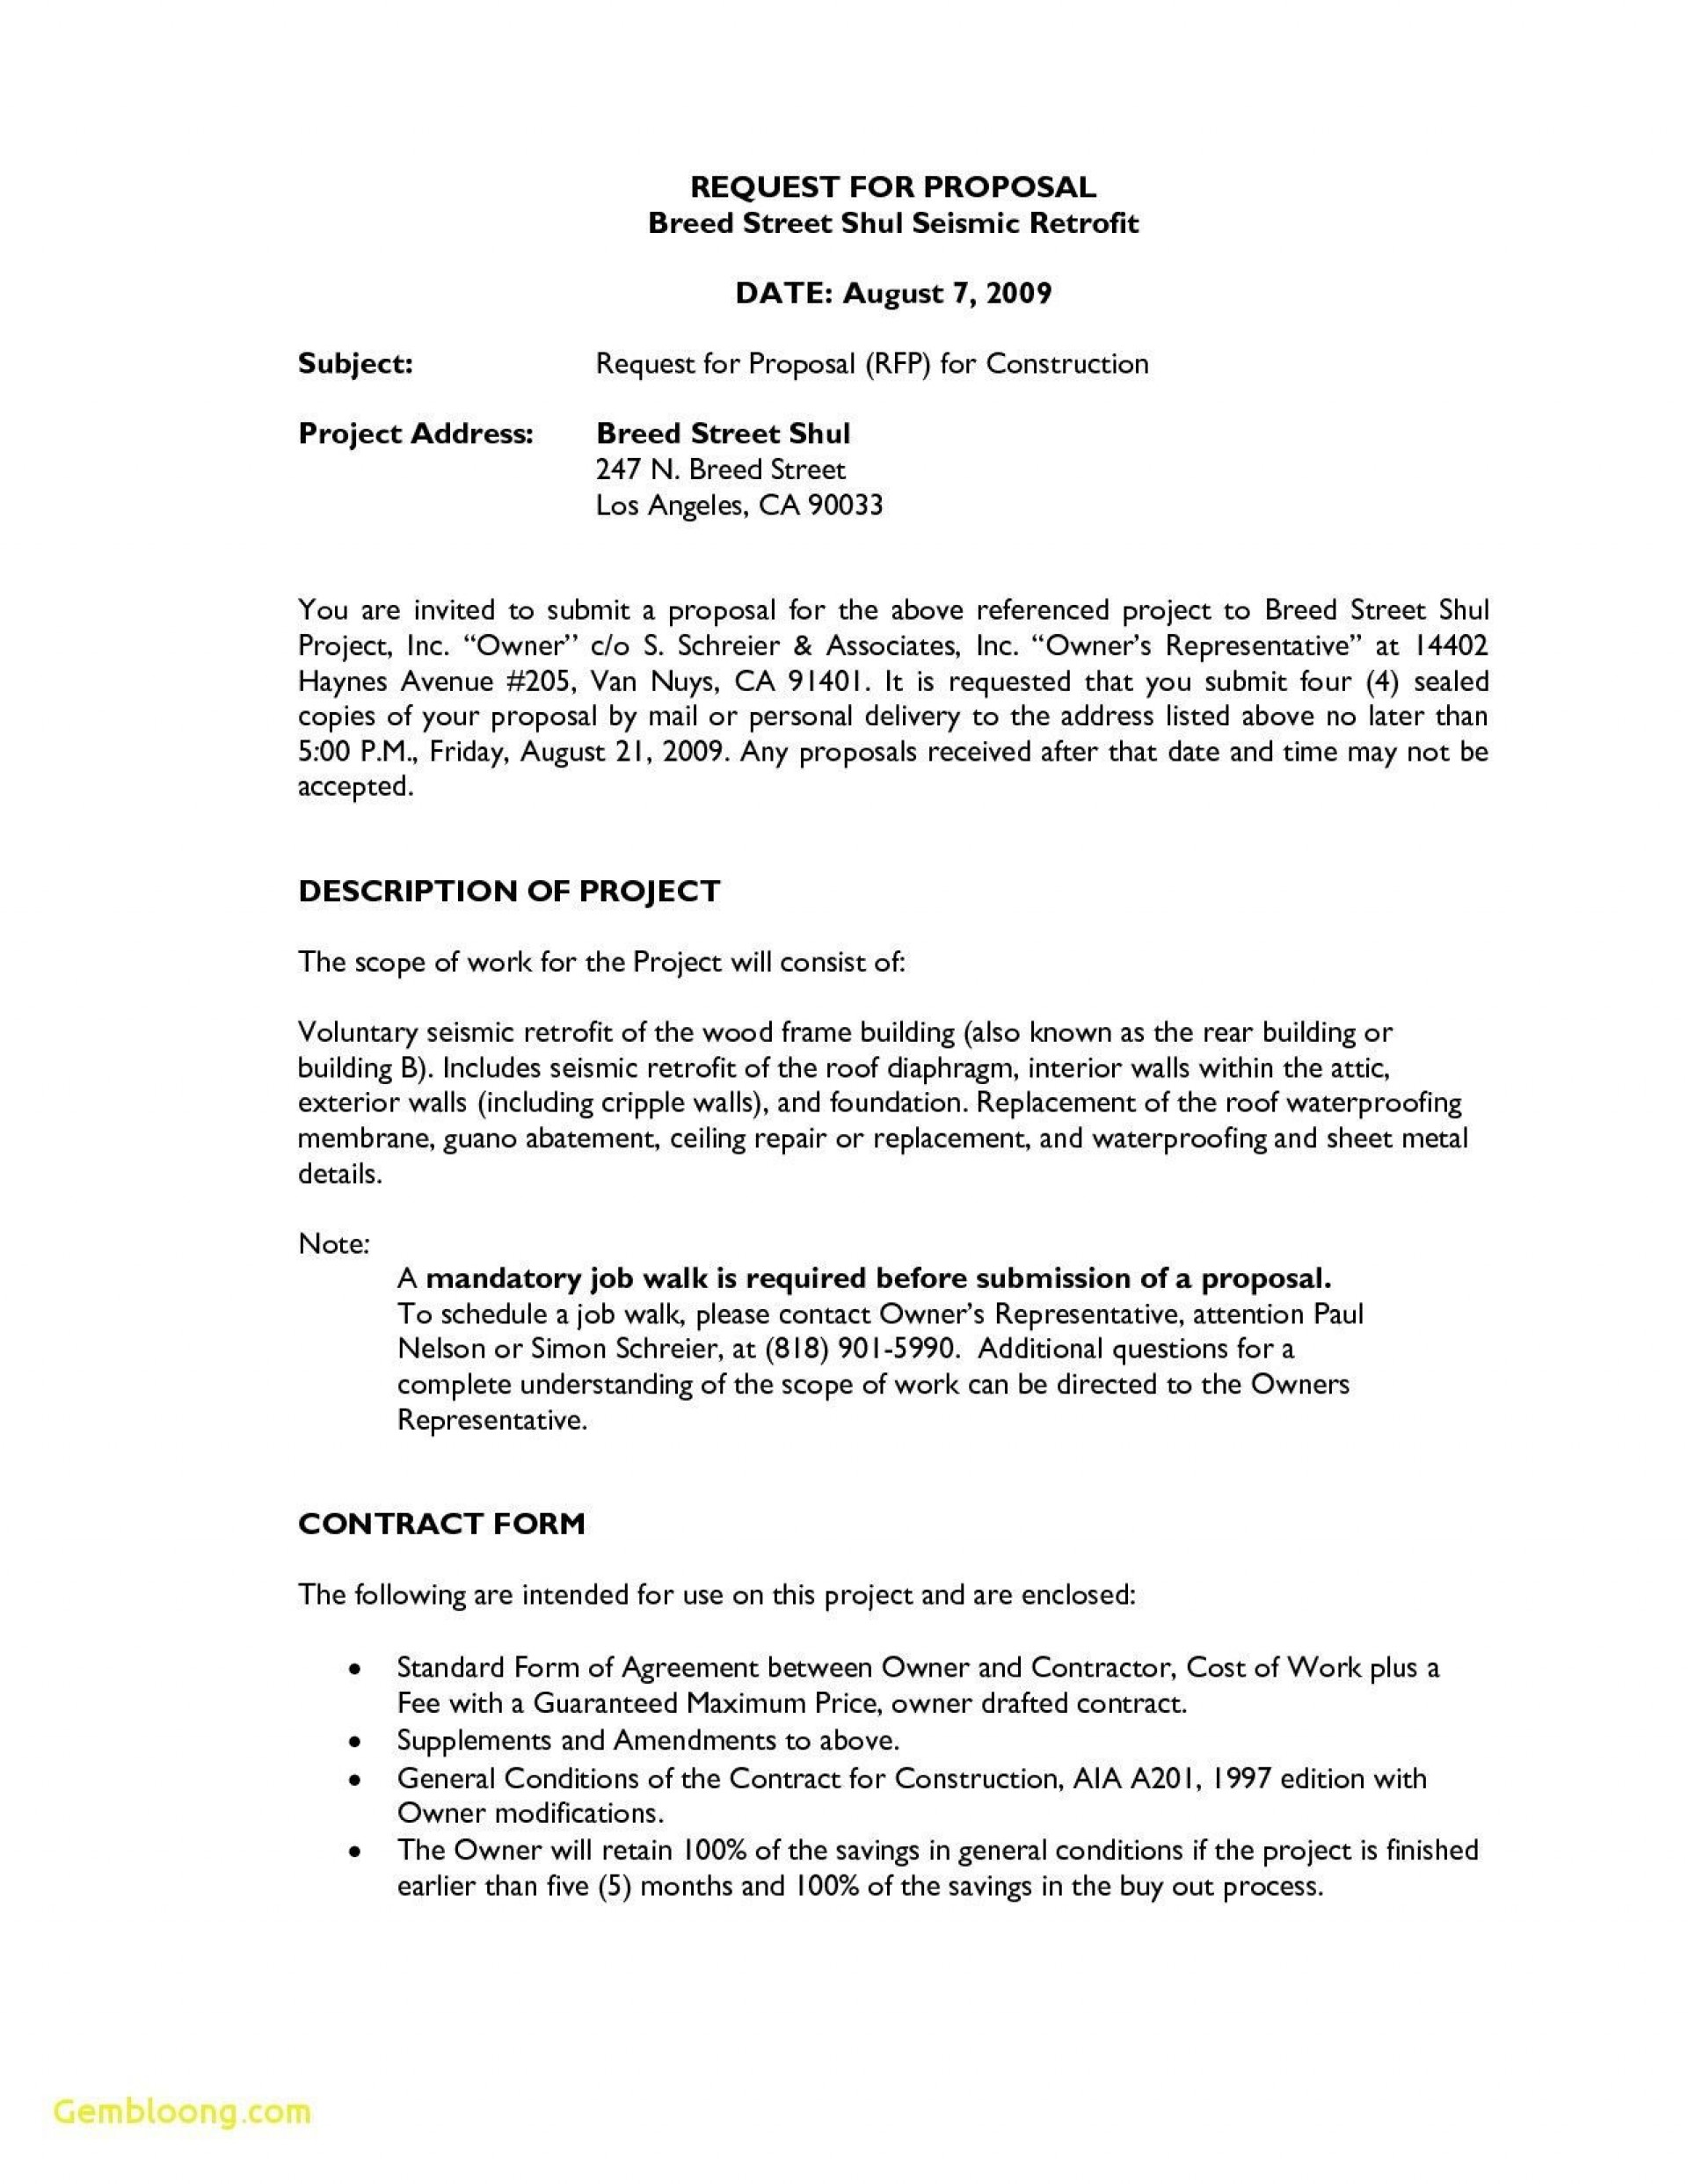 009 Striking Request For Proposal Rfp Template Construction High Resolution 1920